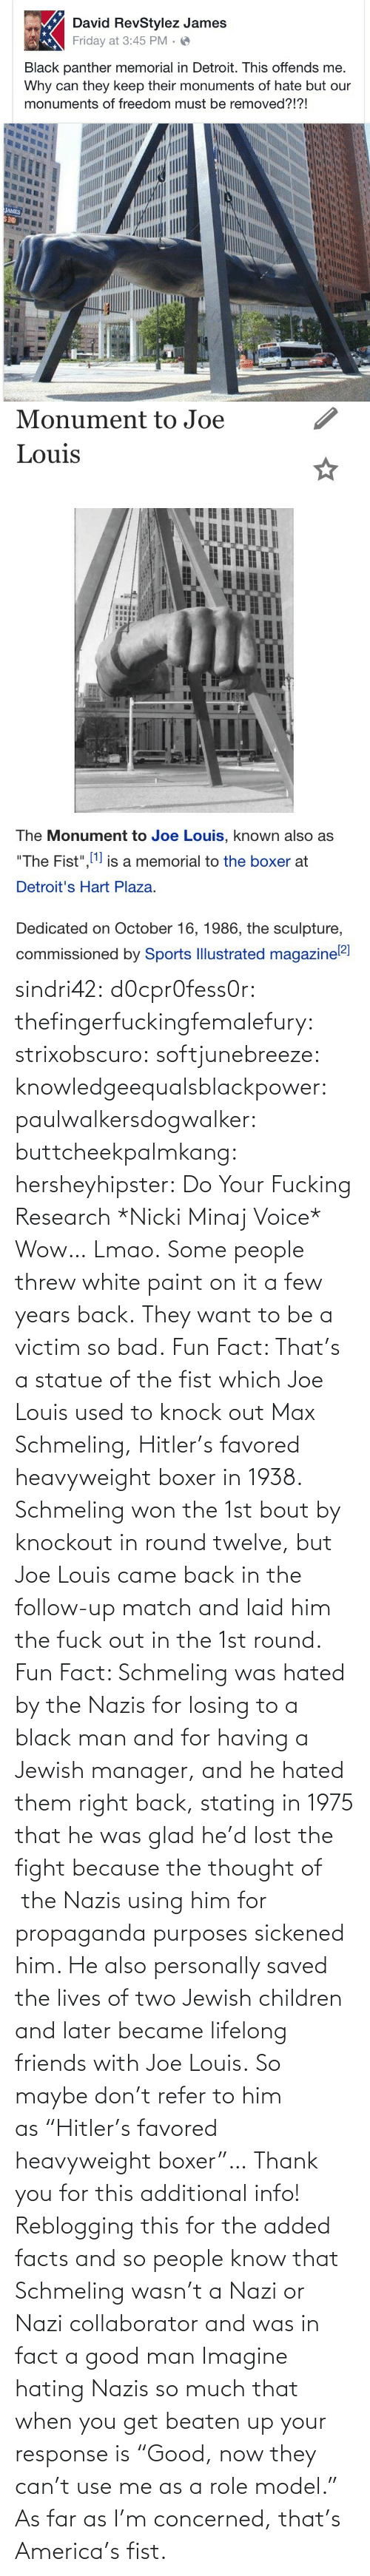 "won: sindri42:  d0cpr0fess0r:  thefingerfuckingfemalefury:  strixobscuro:  softjunebreeze:  knowledgeequalsblackpower:  paulwalkersdogwalker:   buttcheekpalmkang:   hersheyhipster:  Do Your Fucking Research *Nicki Minaj Voice*    Wow… Lmao.   Some people threw white paint on it a few years back.   They want to be a victim so bad.  Fun Fact: That's a statue of the fist which Joe Louis used to knock out Max Schmeling, Hitler's favored heavyweight boxer in 1938. Schmeling won the 1st bout by knockout in round twelve, but Joe Louis came back in the follow-up match and laid him the fuck out in the 1st round.  Fun Fact: Schmeling was hated by the Nazis for losing to a black man and for having a Jewish manager, and he hated them right back, stating in 1975 that he was glad he'd lost the fight because the thought of  the Nazis using him for propaganda purposes sickened him. He also personally saved the lives of two Jewish children and later became lifelong friends with Joe Louis. So maybe don't refer to him as ""Hitler's favored heavyweight boxer""…  Thank you for this additional info! Reblogging this for the added facts and so people know that Schmeling wasn't a Nazi or Nazi collaborator and was in fact a good man   Imagine hating Nazis so much that when you get beaten up your response is ""Good, now they can't use me as a role model.""  As far as I'm concerned, that's America's fist."